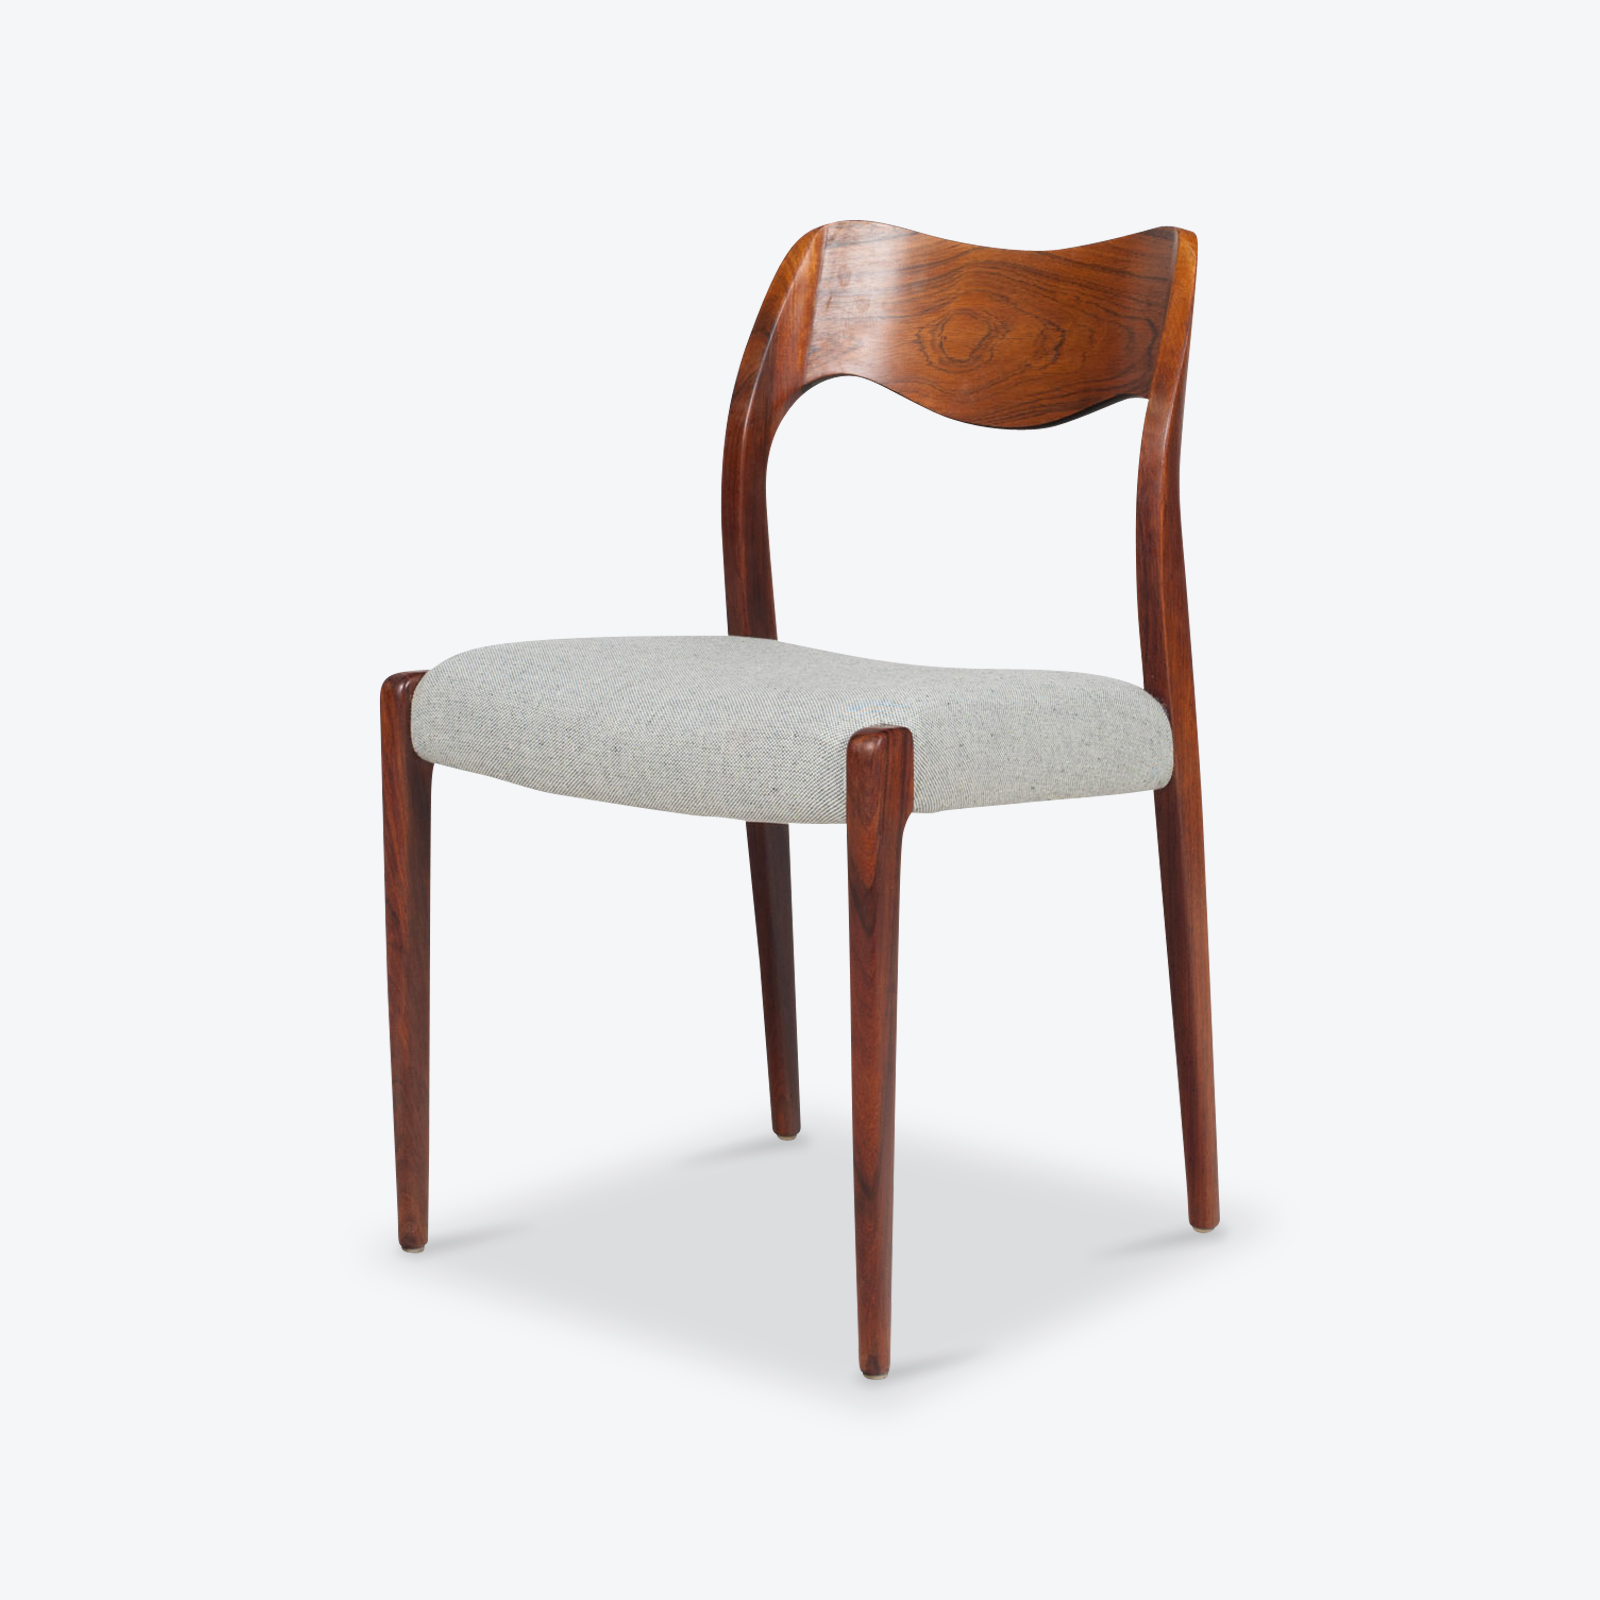 new styles 6b073 db256 Set of 6 Model 71 Dining Chairs by Niels Moller for J. L. Mobelfabrik in  Rosewood, 1950s, Denmark